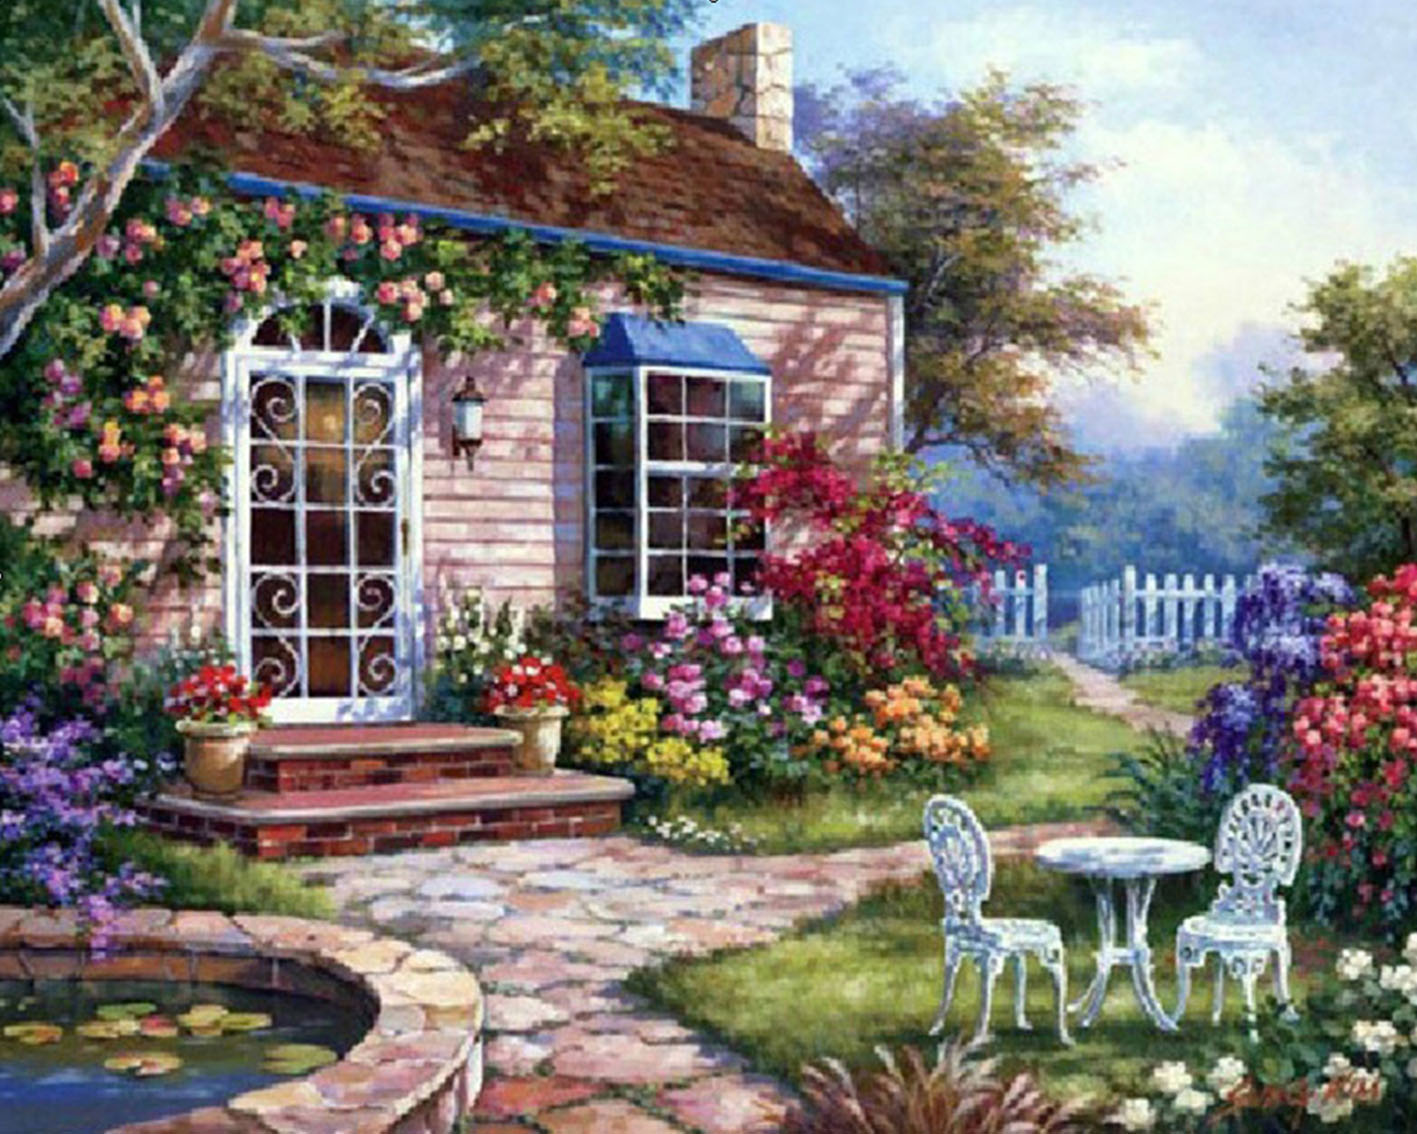 Beautiful Garden Pictures Houses beautiful garden house beautiful flowers garden house beautiful garden house garden house beautiful views wallpapers 5d Diy Diamond Painting Cross Stitch Beautiful Garden Houses Crystal Needlework Diamond Embroidery Full Diamond Decorative